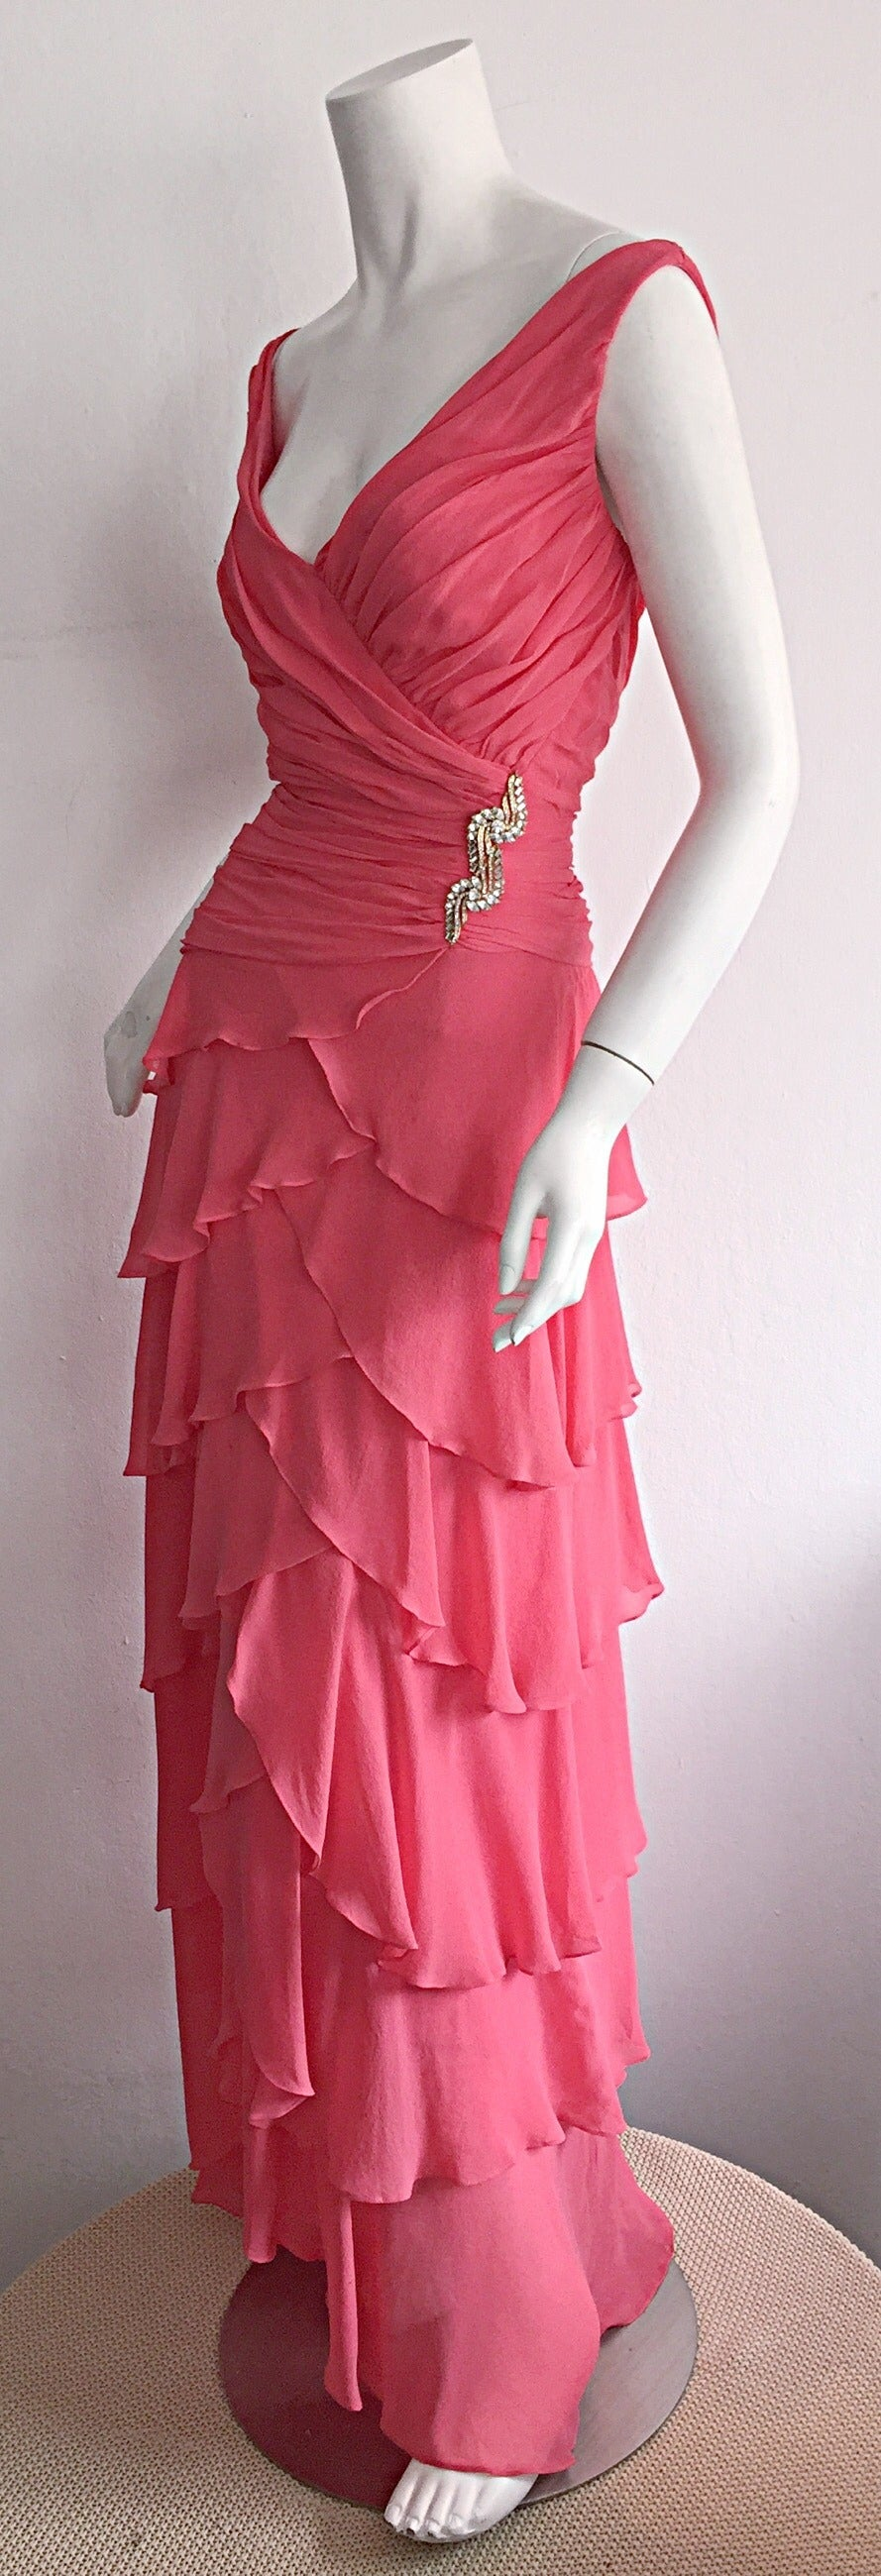 Women's Beautiful 1990s Vintage Tadashi Shoji Pink Silk Chiffon Tiered Dress For Sale